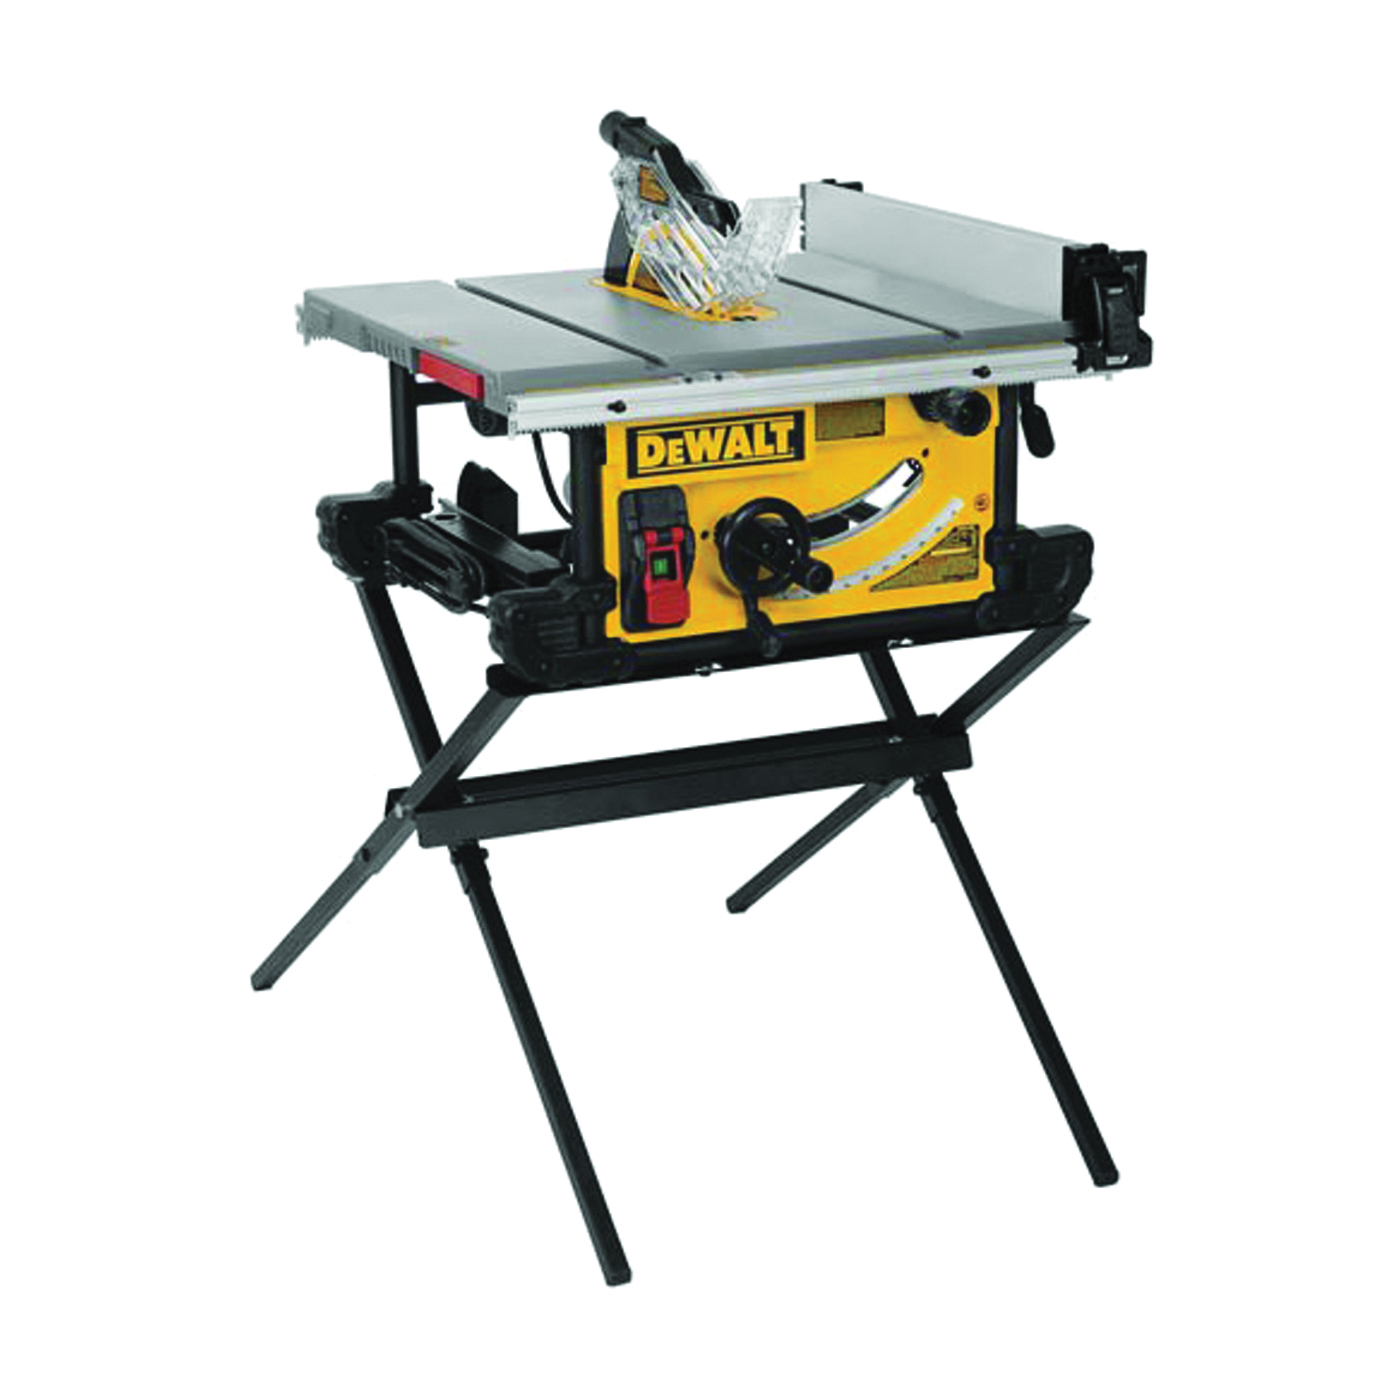 Picture of DeWALT DWE7490X Table Saw, 120 V, 15 A, 10 in Dia Blade, 5/8 in Arbor, 4800 rpm Speed